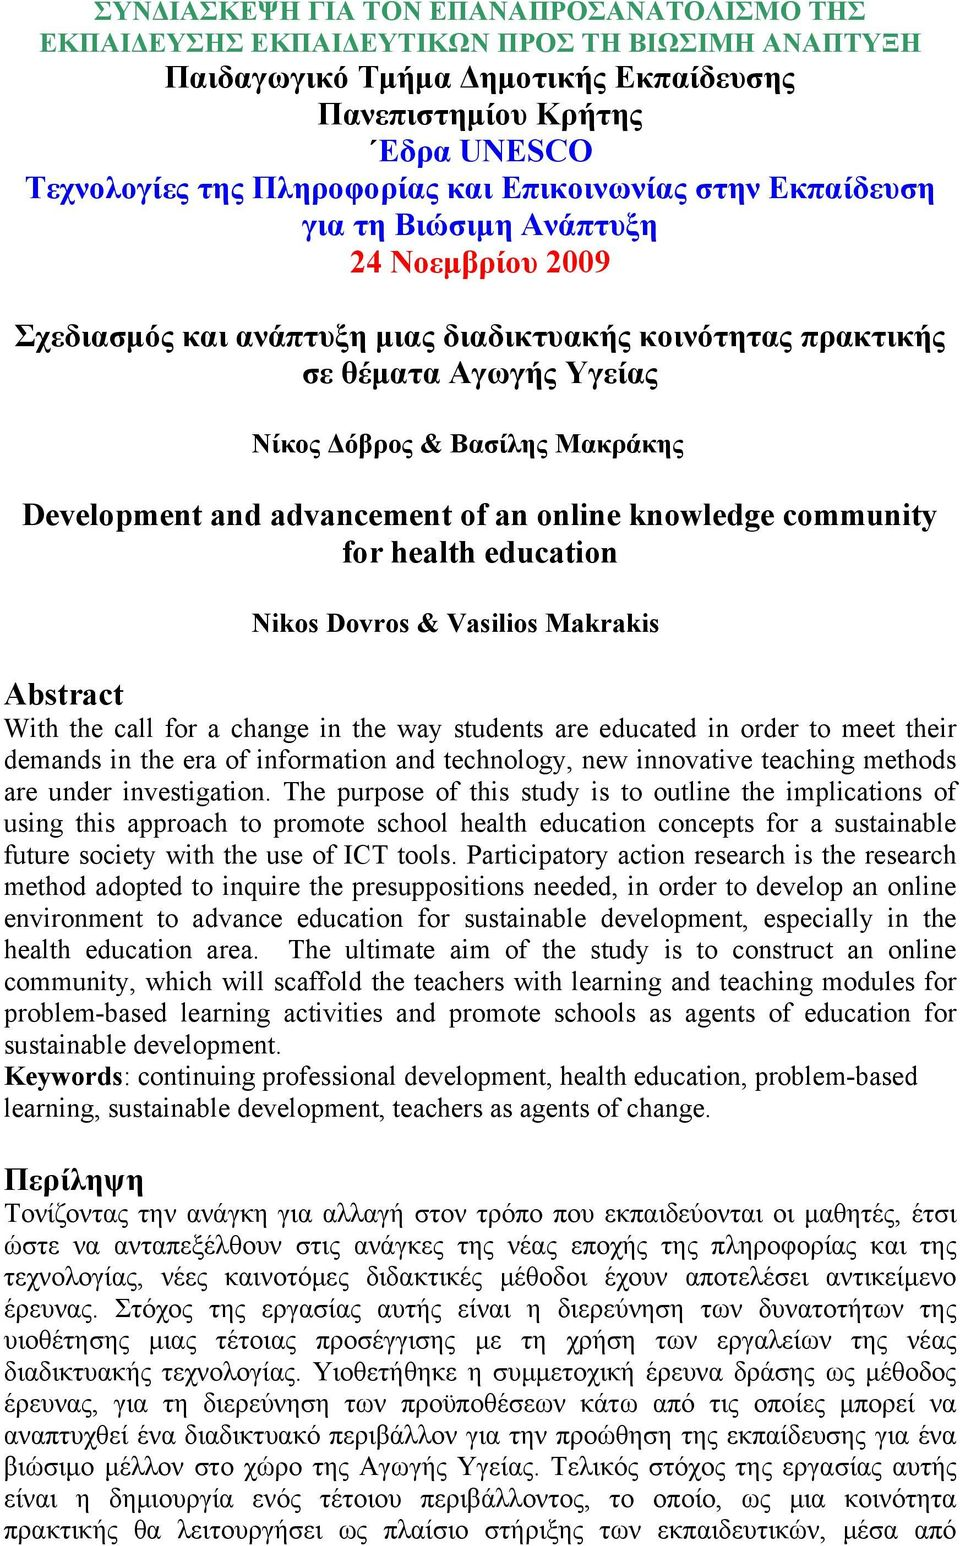 Development and advancement of an online knowledge community for health education Nikos Dovros & Vasilios Makrakis Abstract With the call for a change in the way students are educated in order to